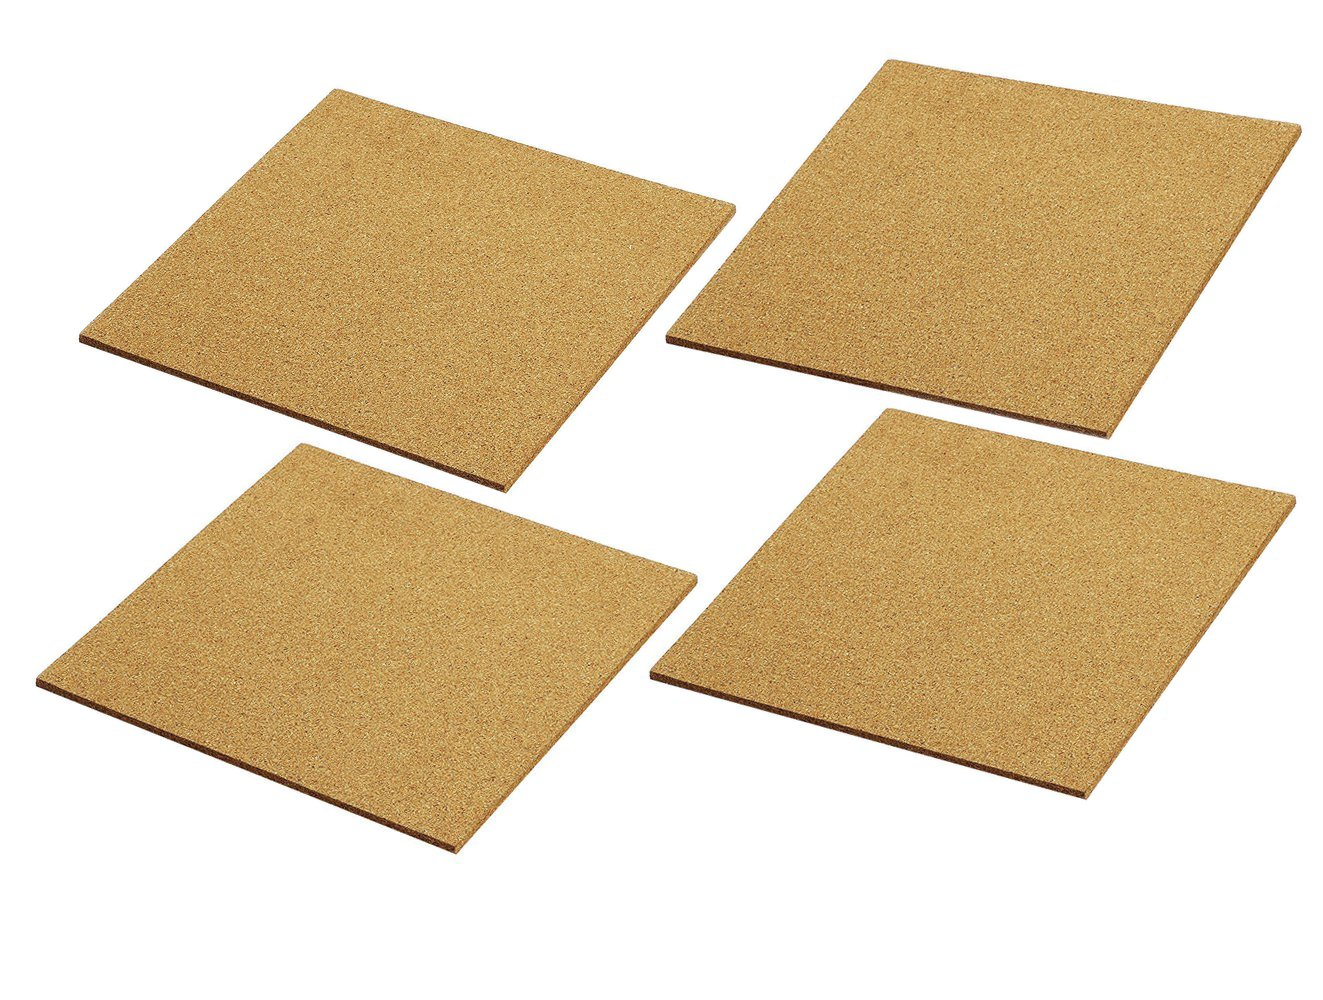 Juvale Cork Tile Boards -Frameless - Mini Wall Bulletin Boards - Natural - 4 Pack - 12 x 12 inches OP-31649